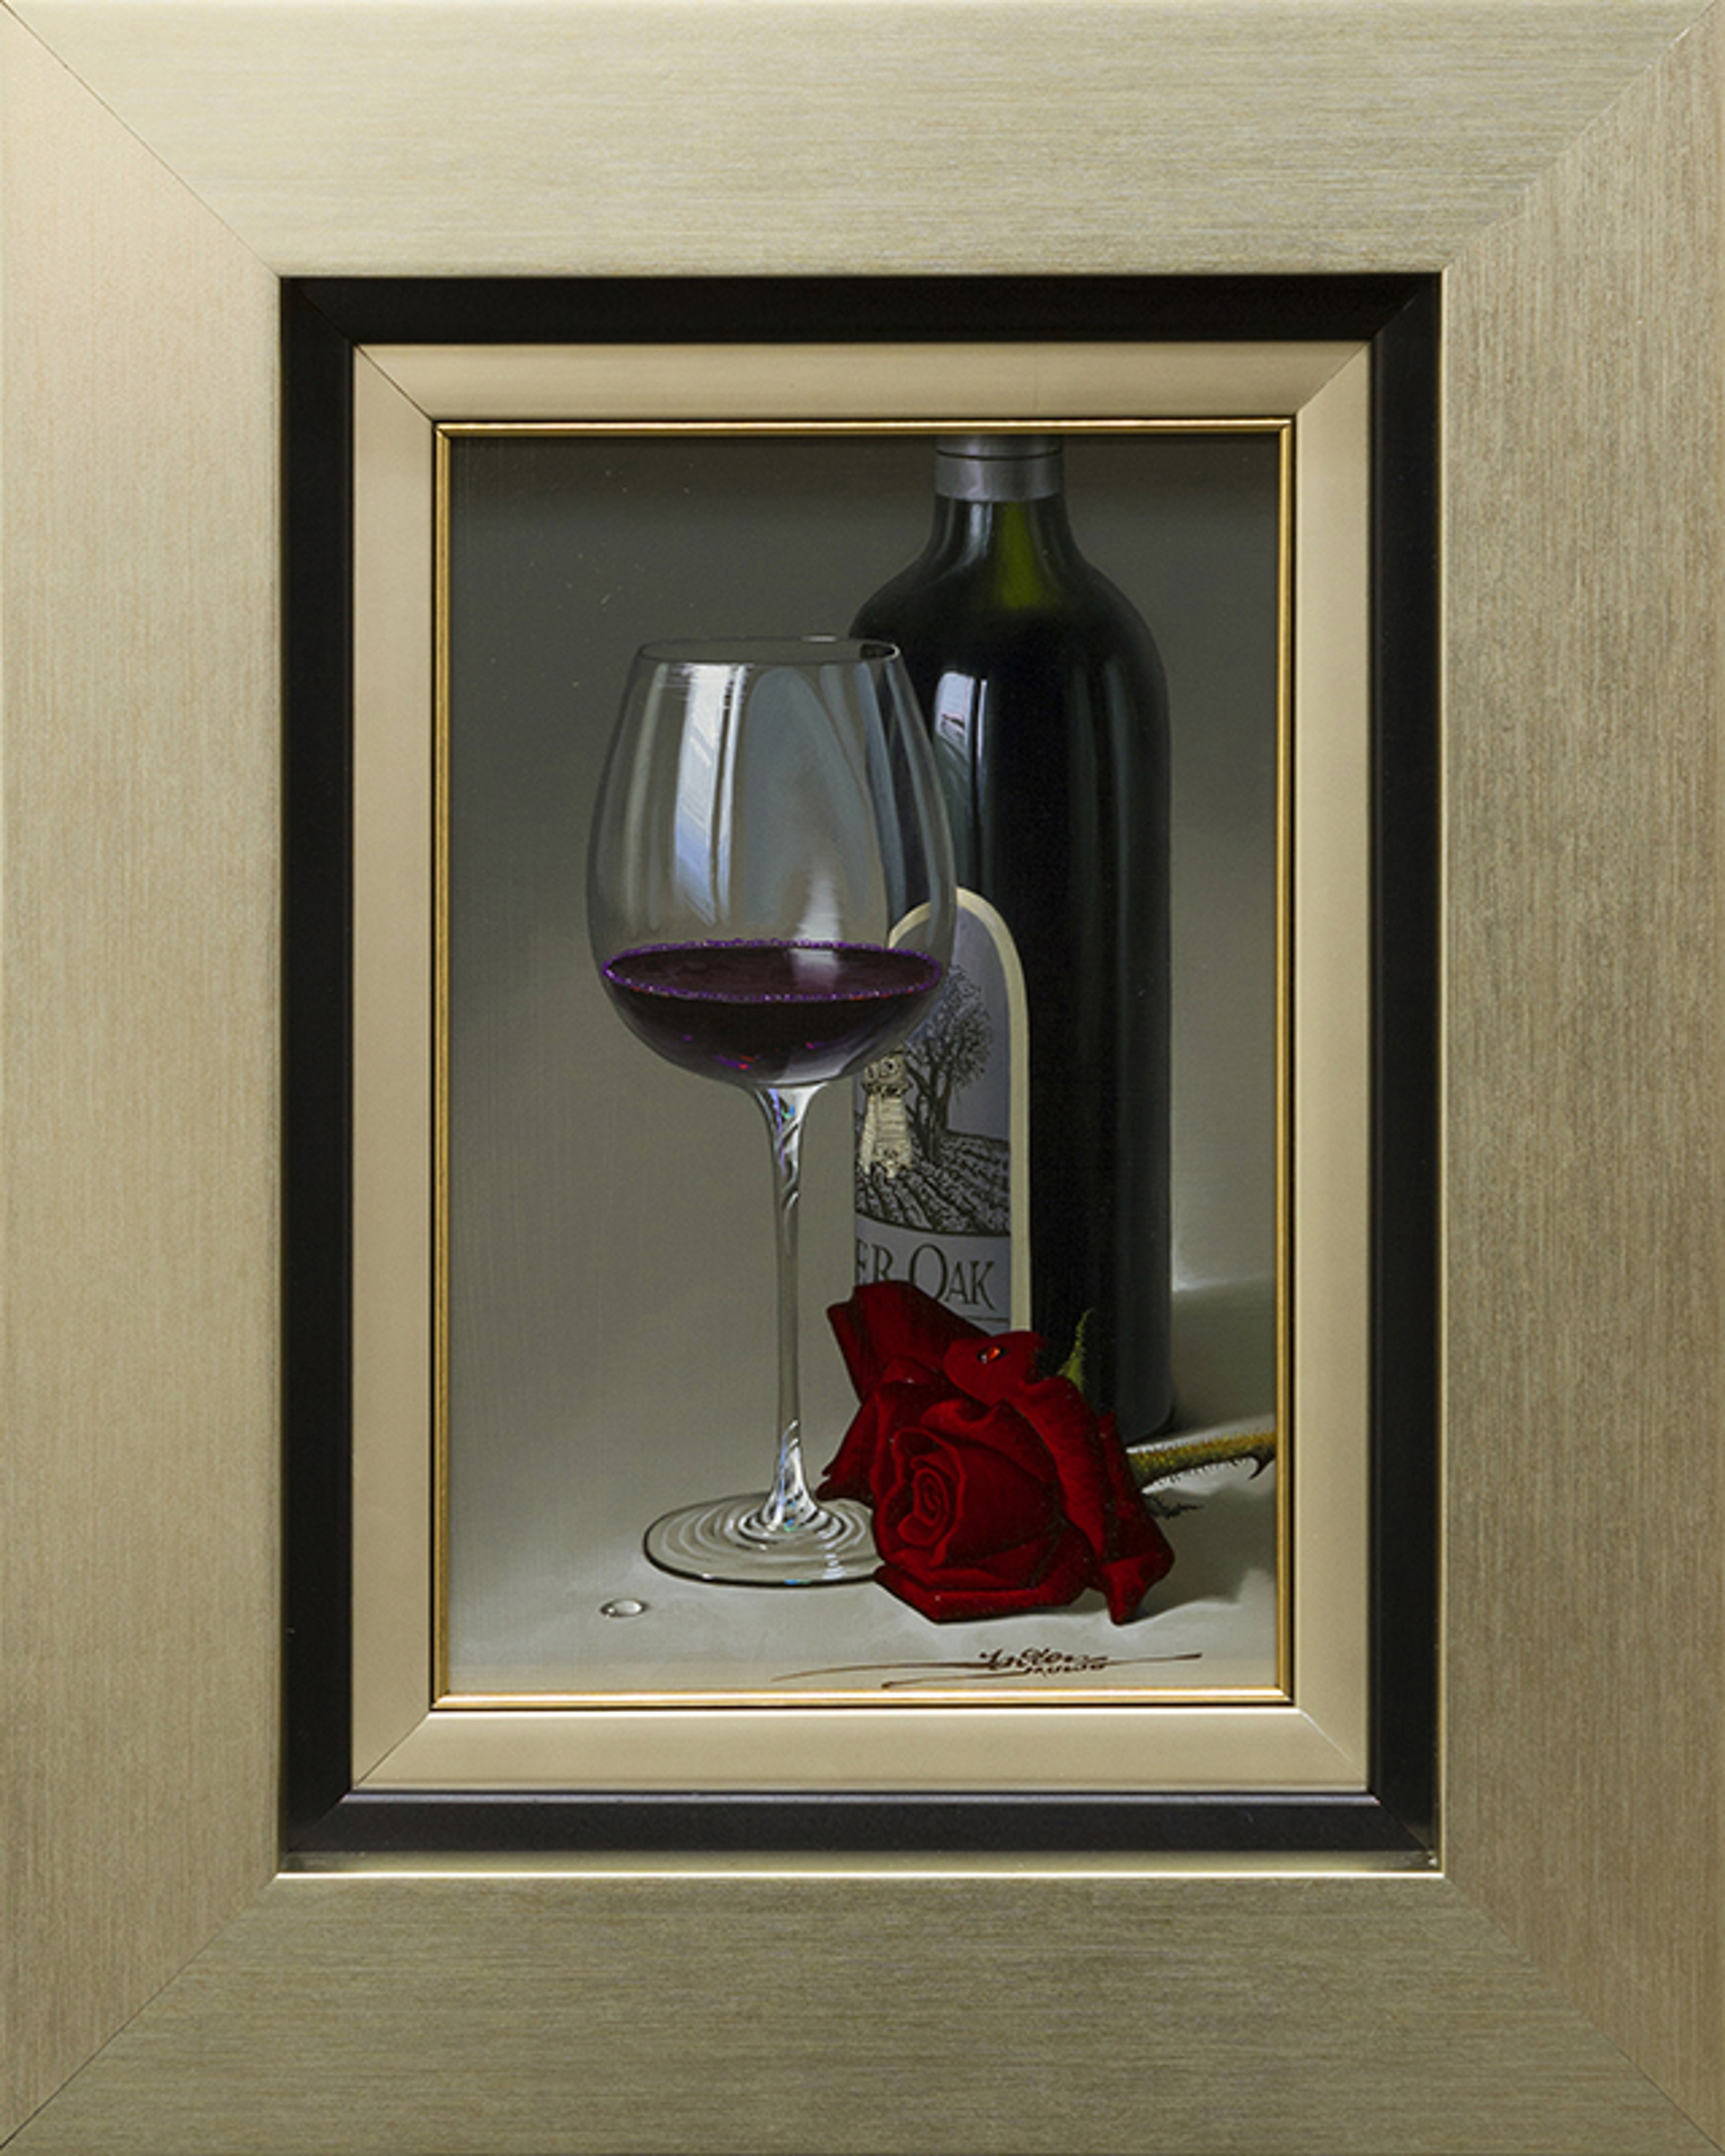 A Toast to Love by Javier Mulio